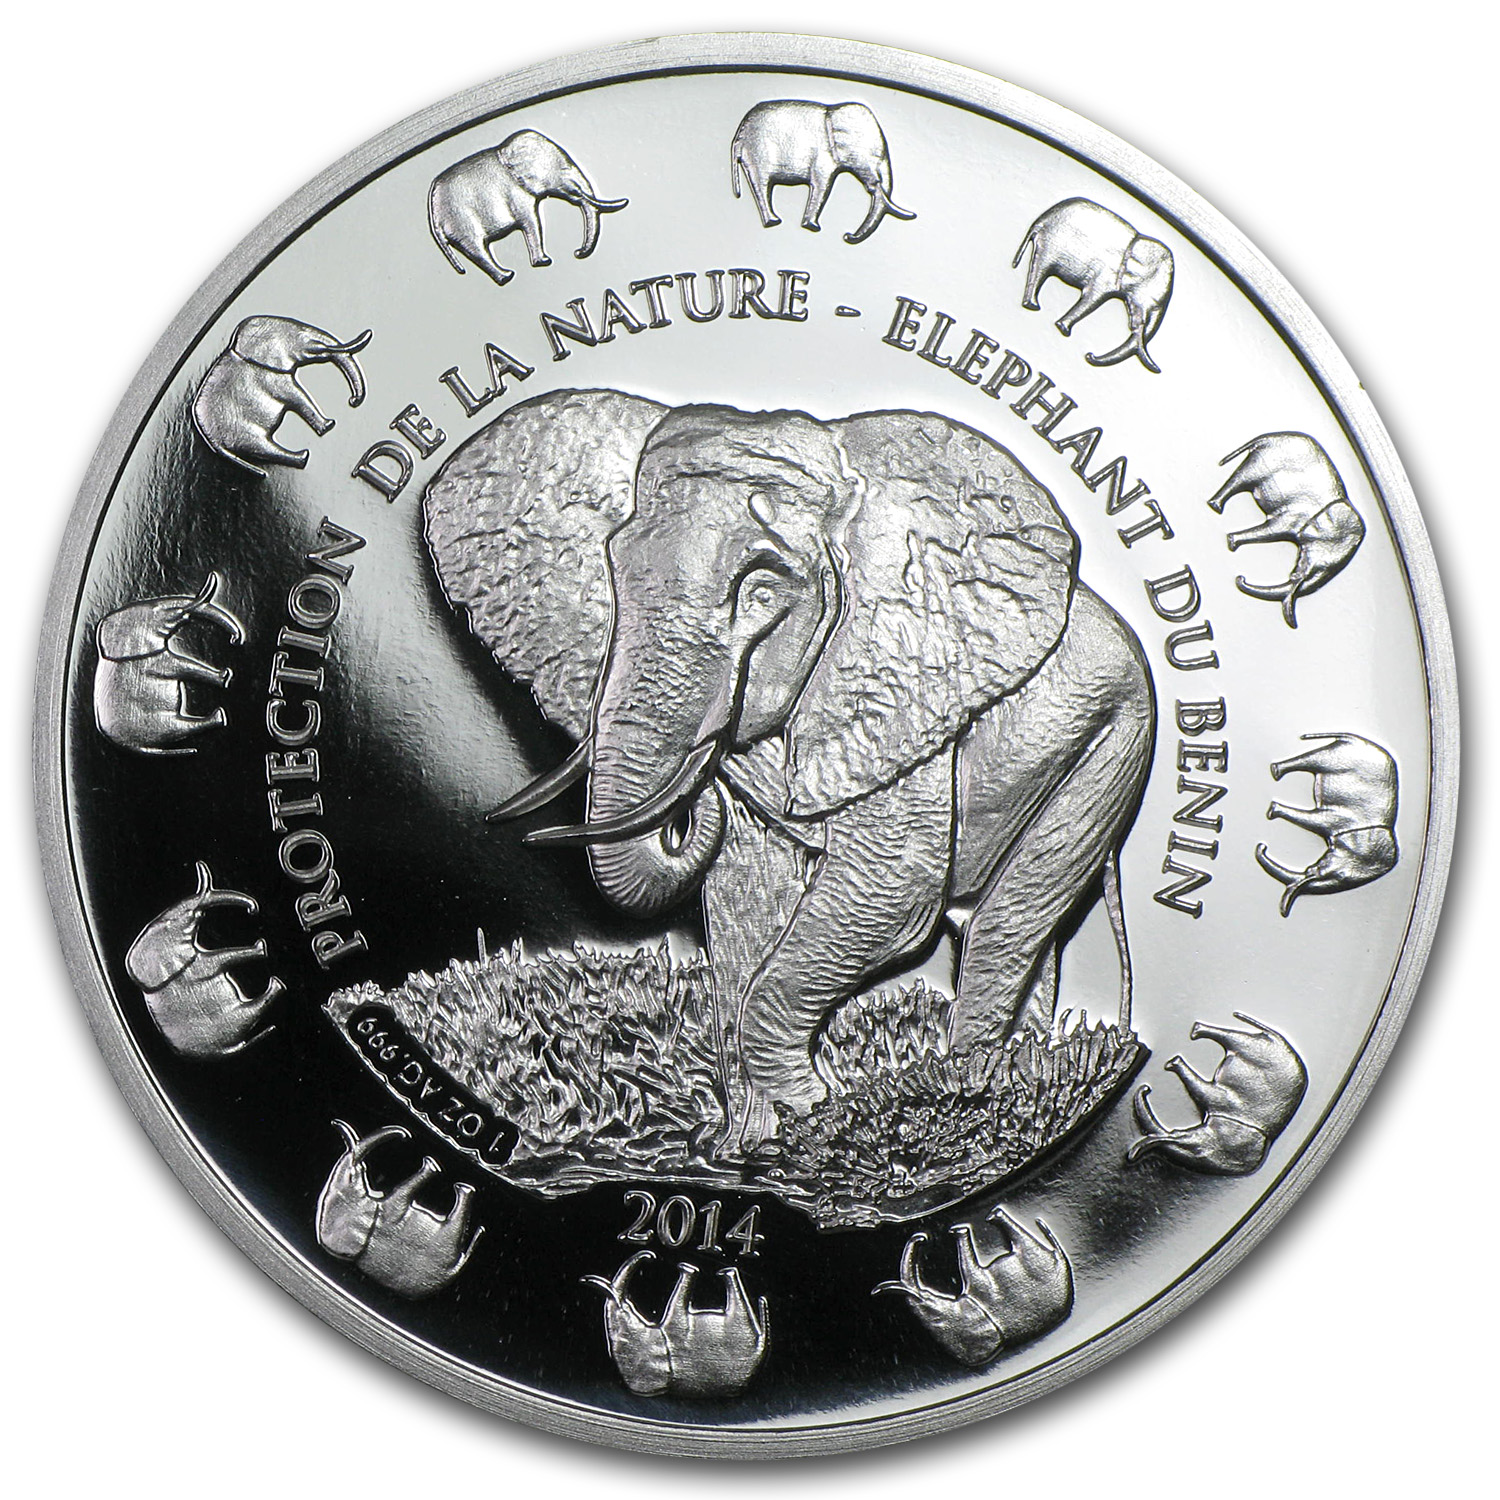 2014 Benin 1 oz Silver Protection de la Nature Elephant